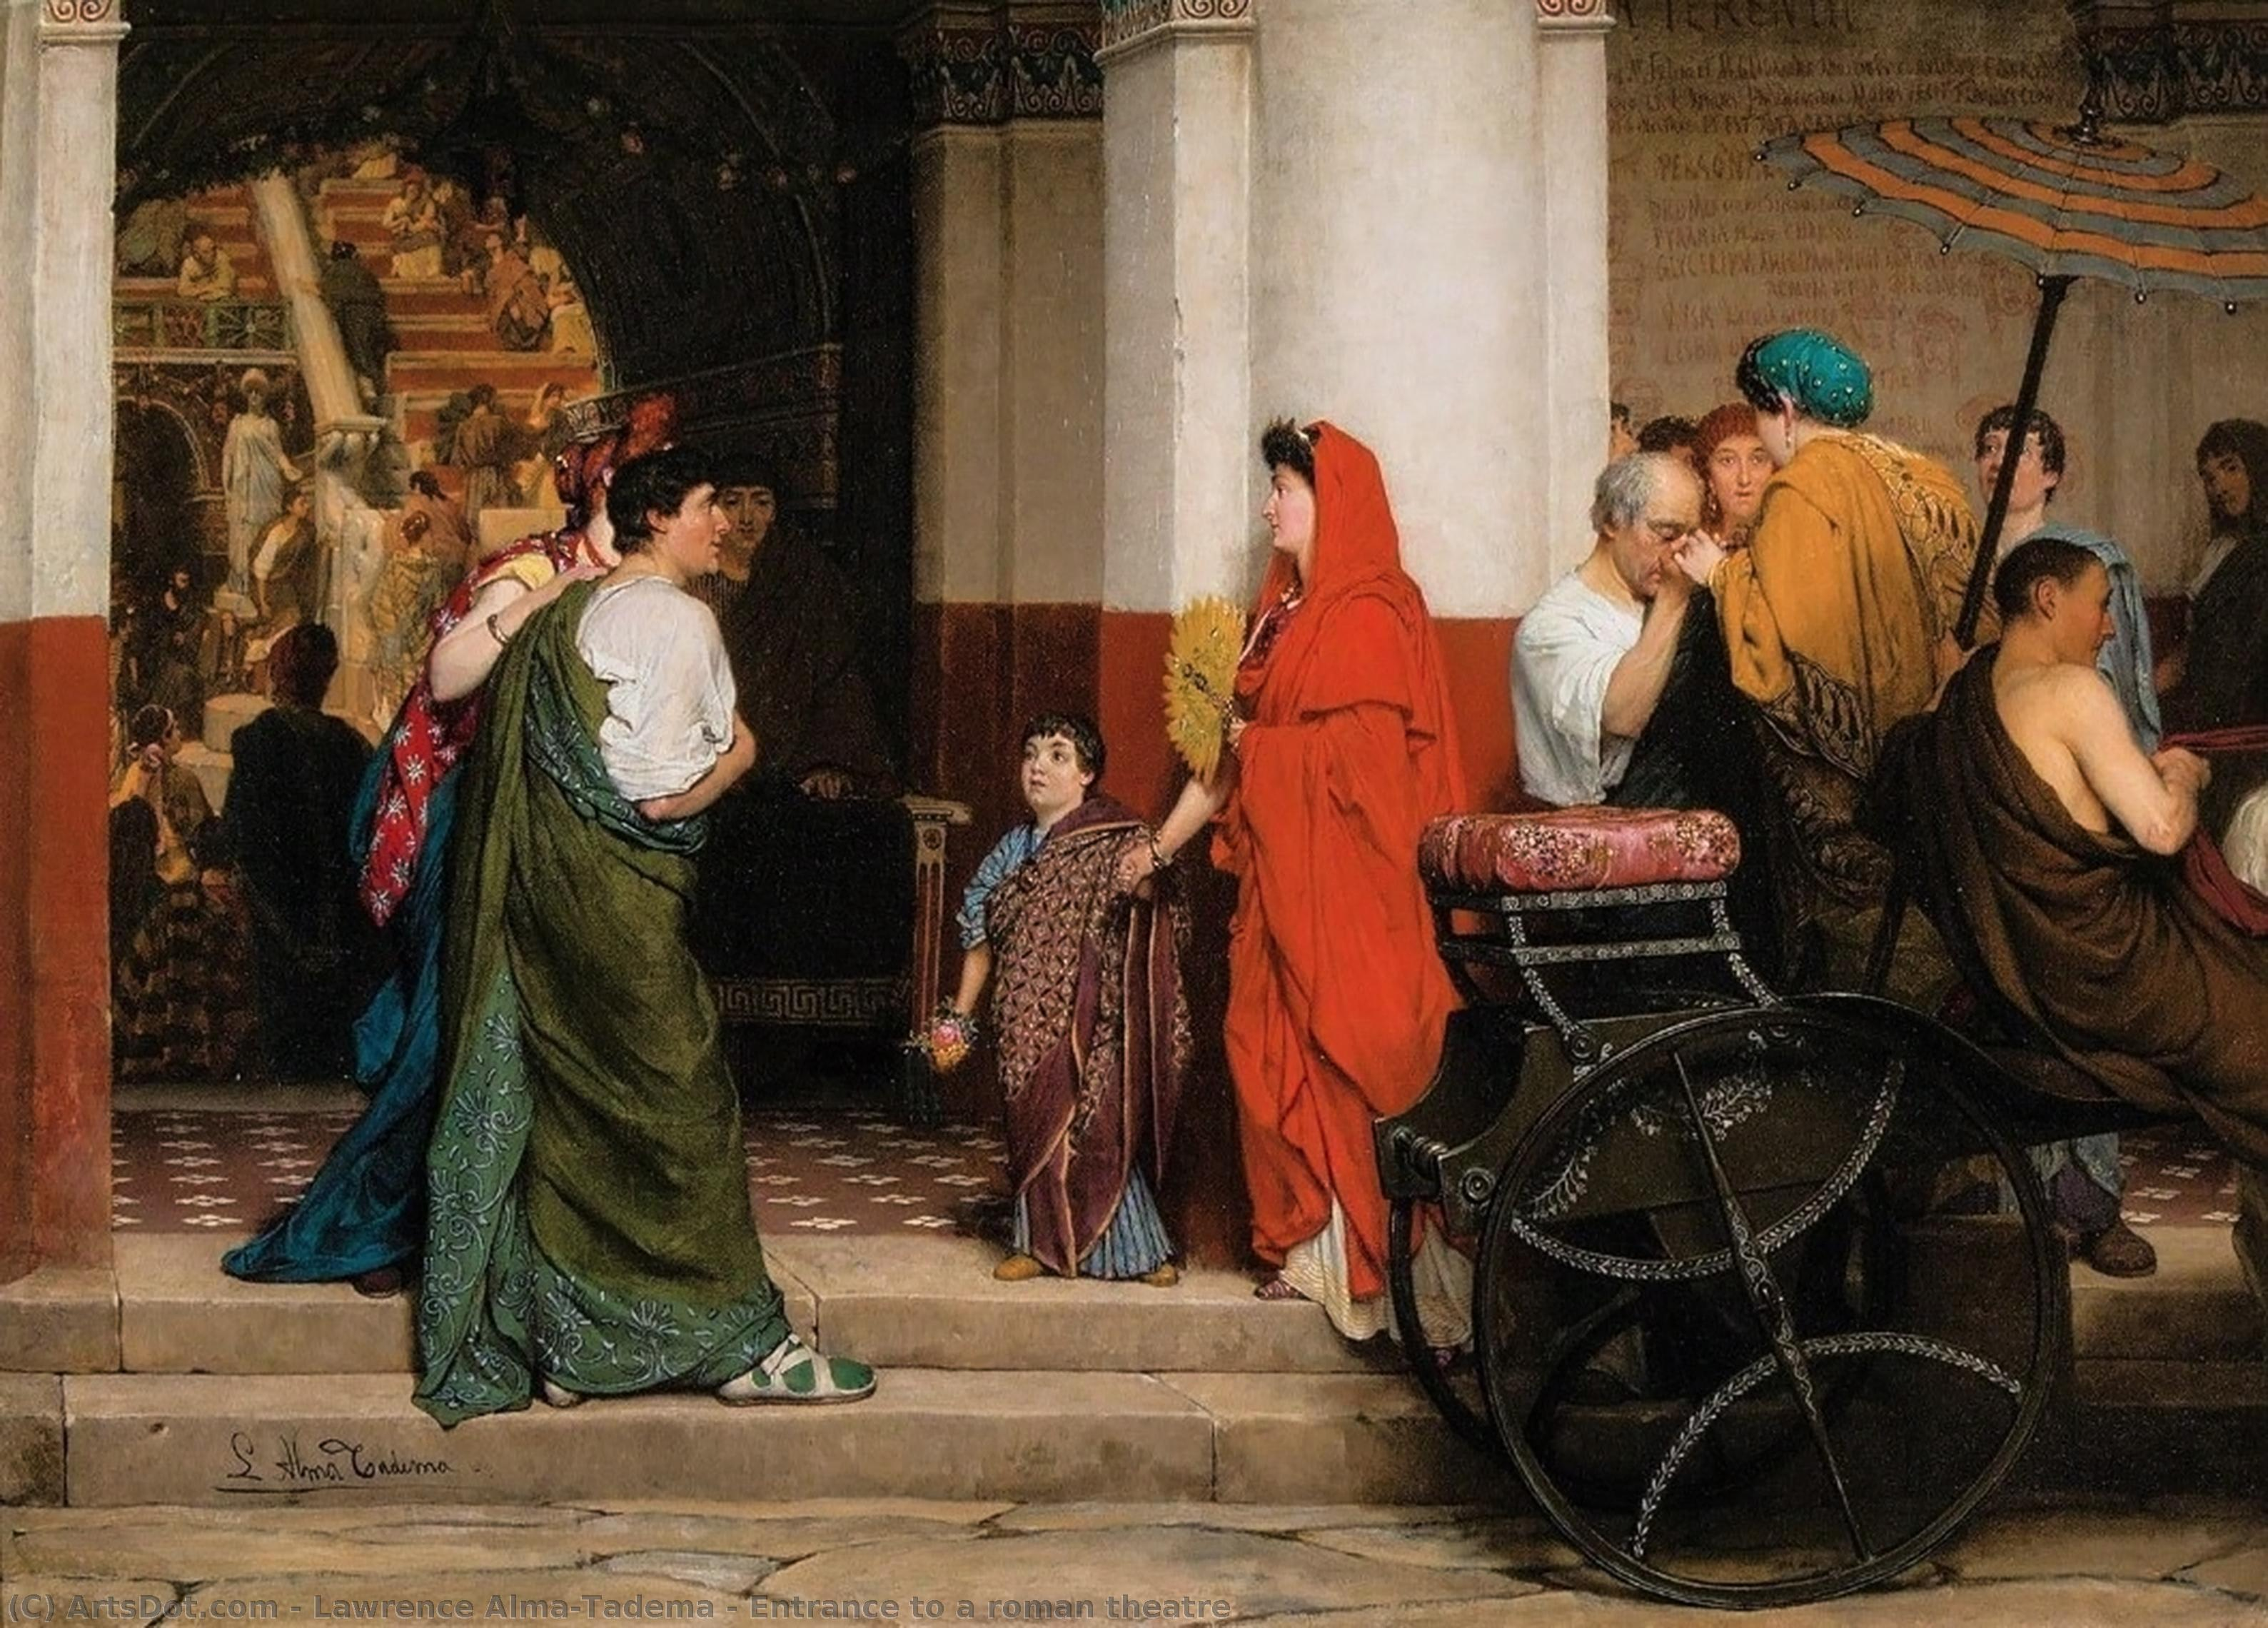 Wikioo.org - The Encyclopedia of Fine Arts - Painting, Artwork by Lawrence Alma-Tadema - Entrance to a roman theatre